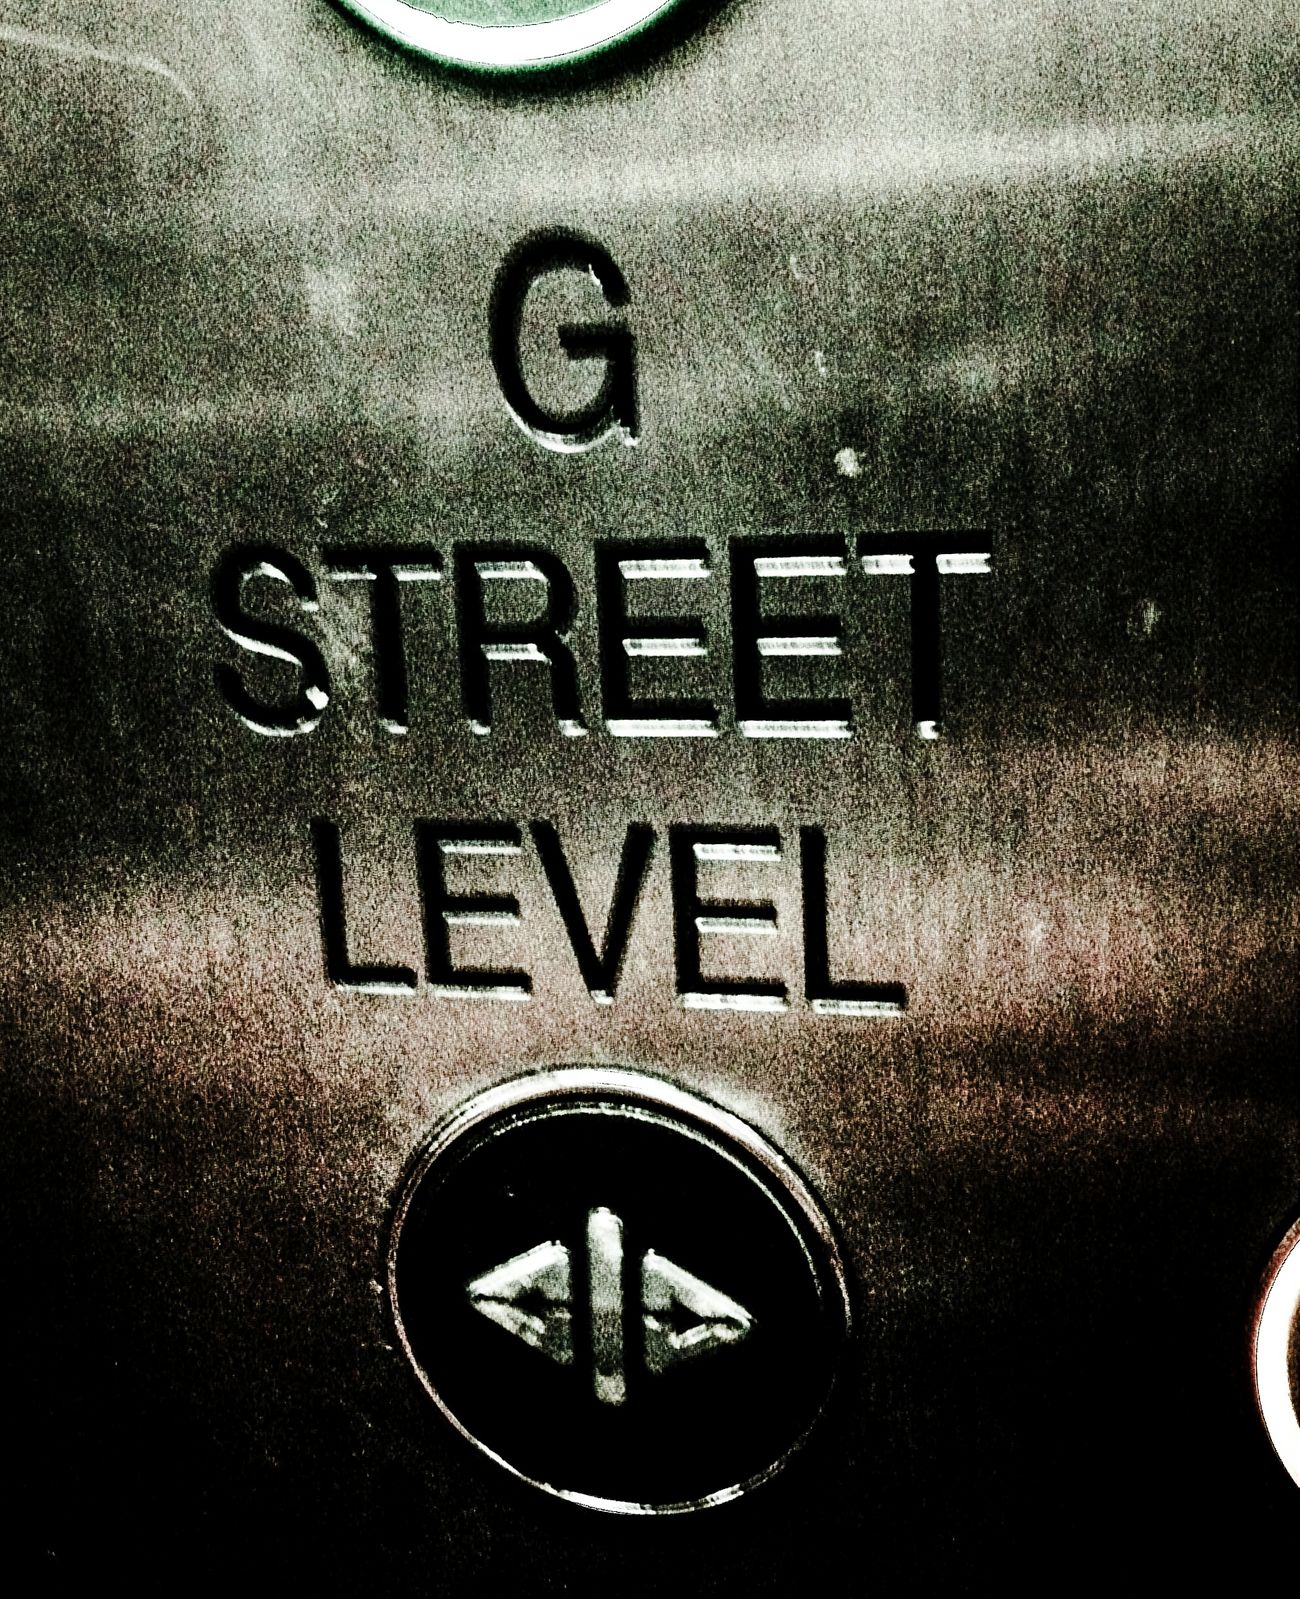 The level of operation. Taken in a lift in Manchester. Street Urban Laser Cut Engraving Metal Metallic Lettering Elevator Manchester